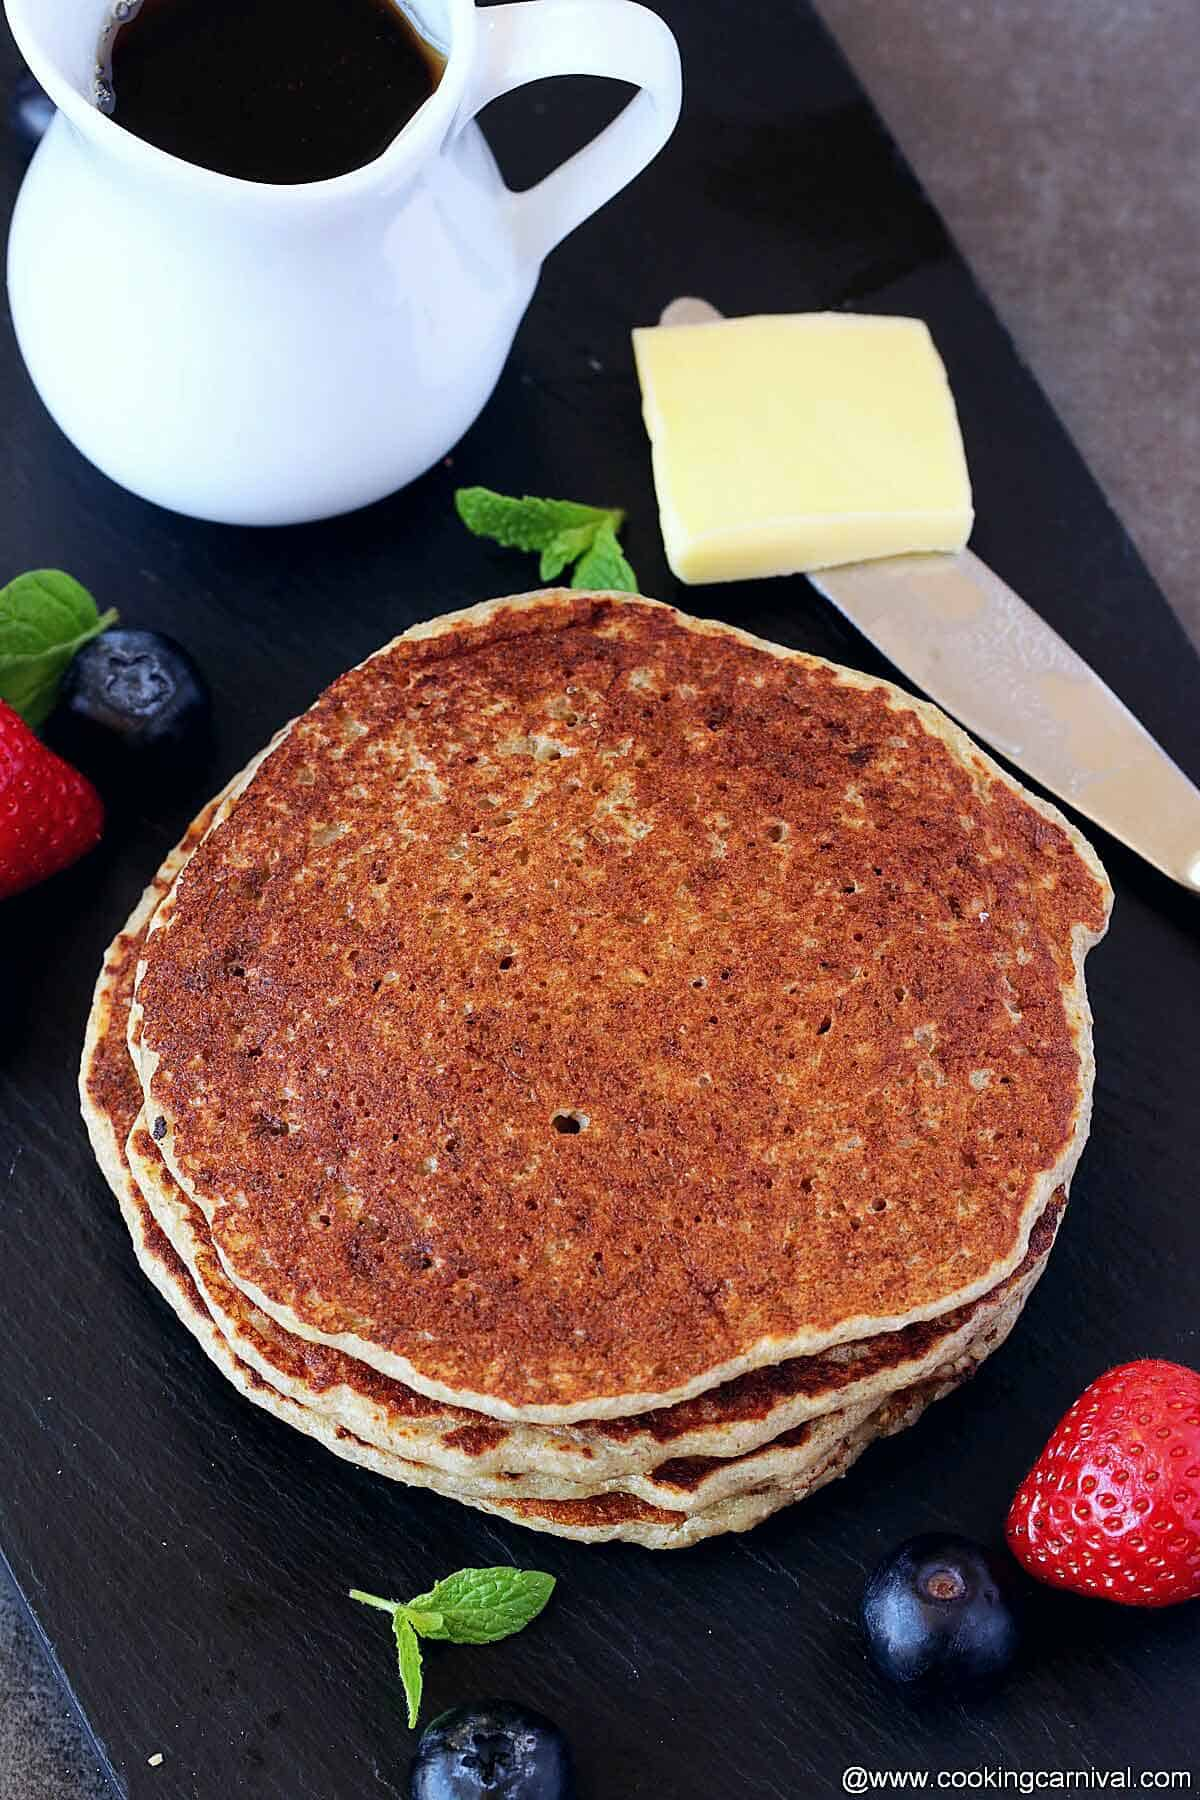 stack of Oatmeal pancake, butter and maple syrup on the sides